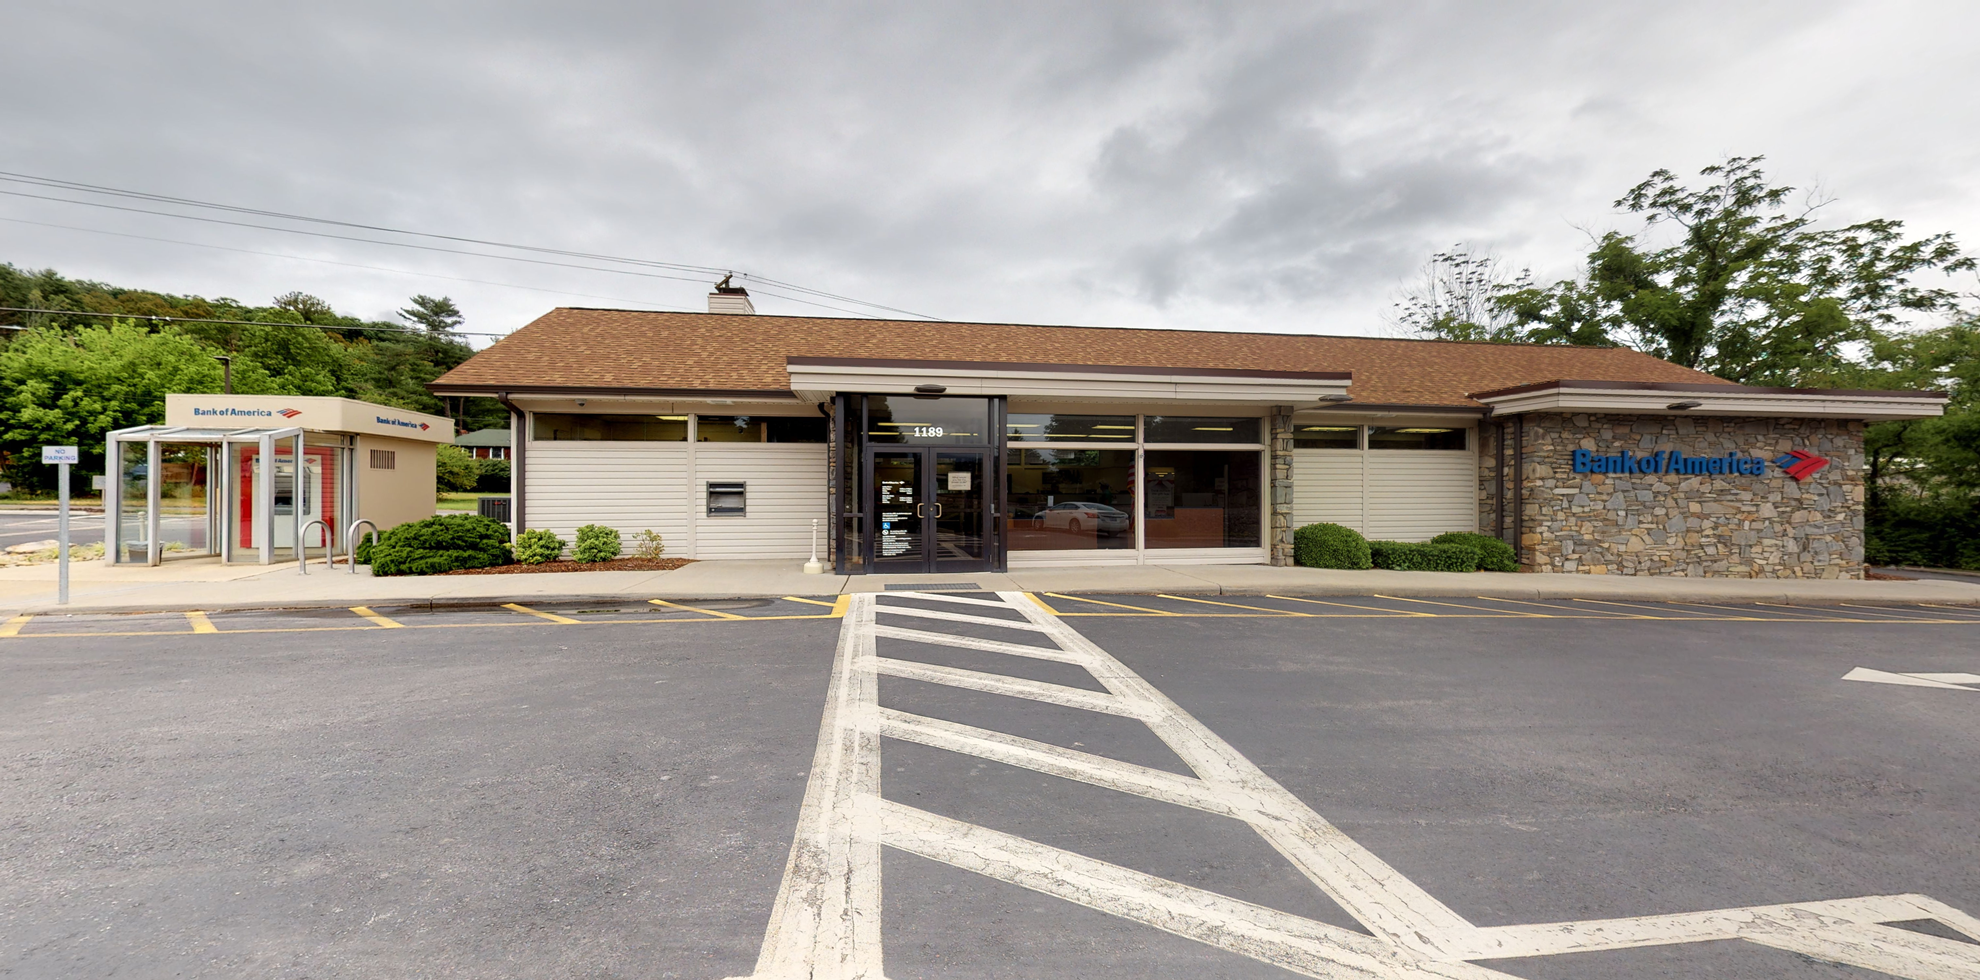 Bank of America financial center with drive-thru ATM and teller | 1189 Smoky Park Hwy, Candler, NC 28715